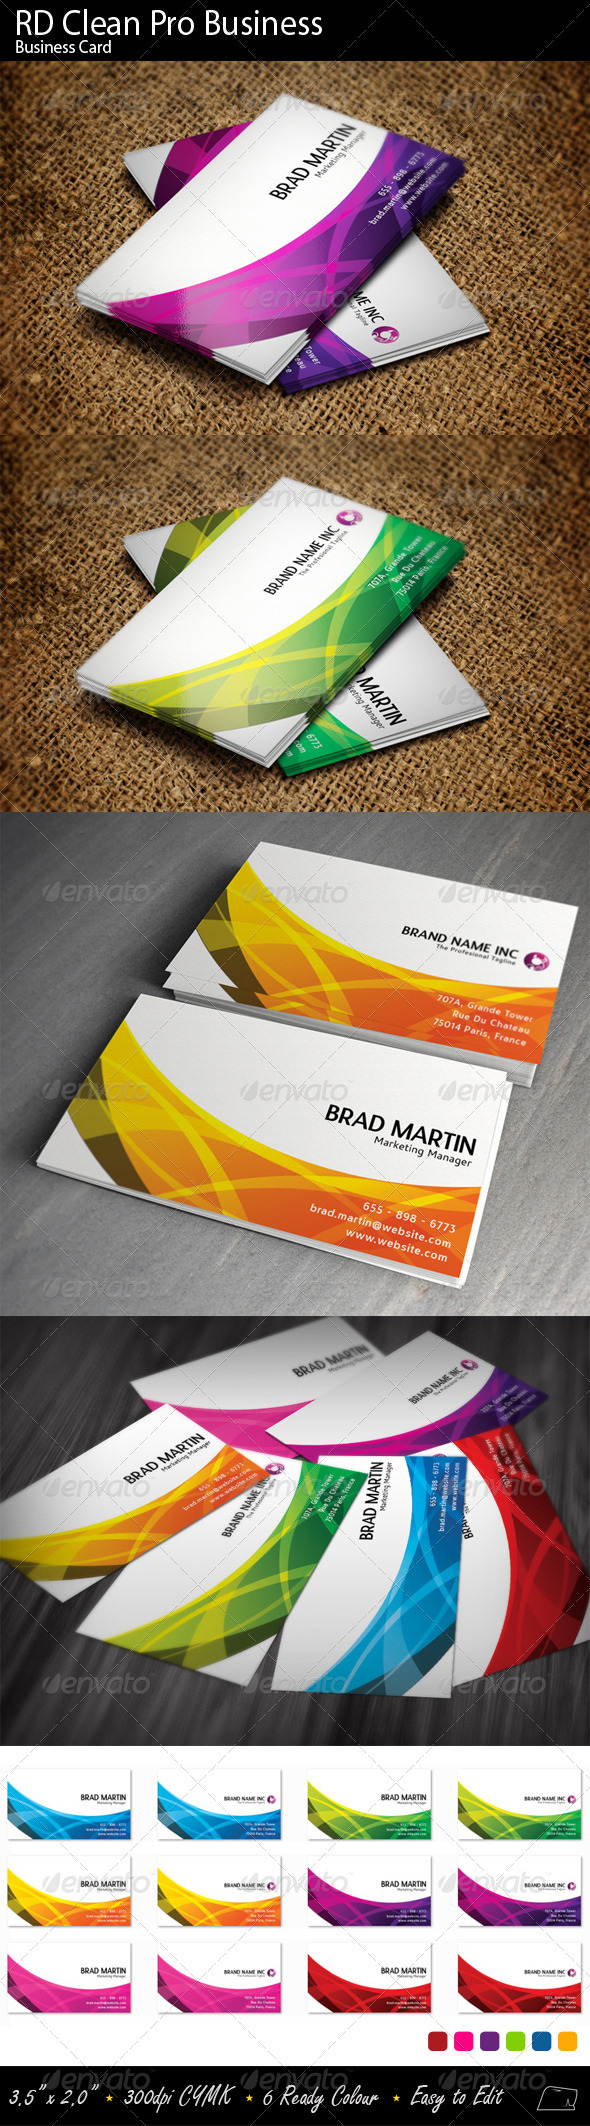 RD Clean Pro Business - Corporate Business Cards